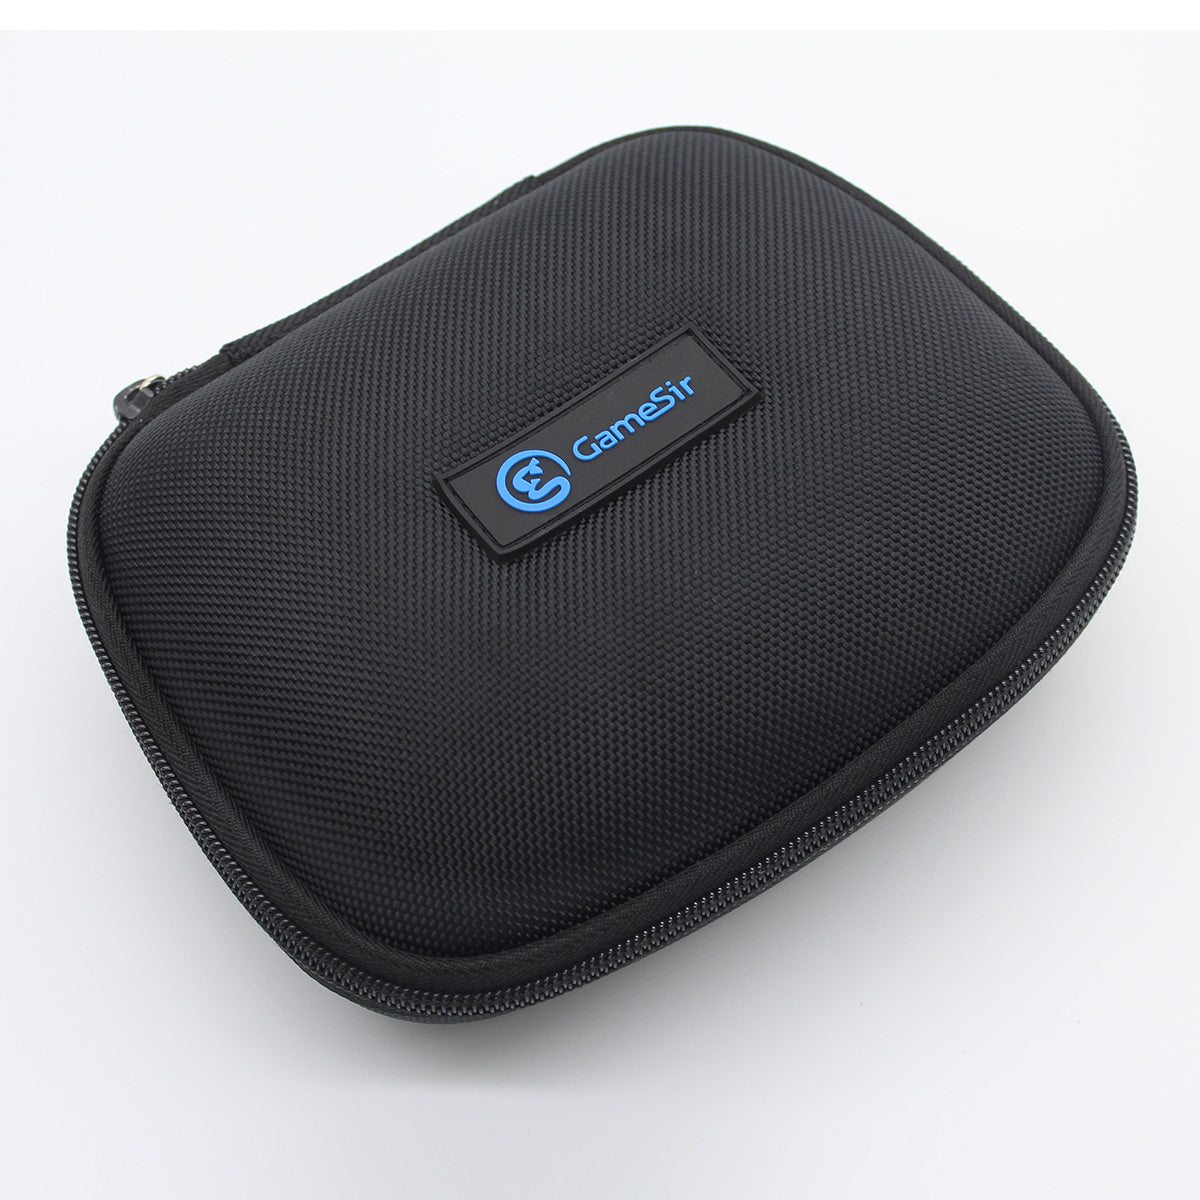 GameSir Gamepad Carrying Case